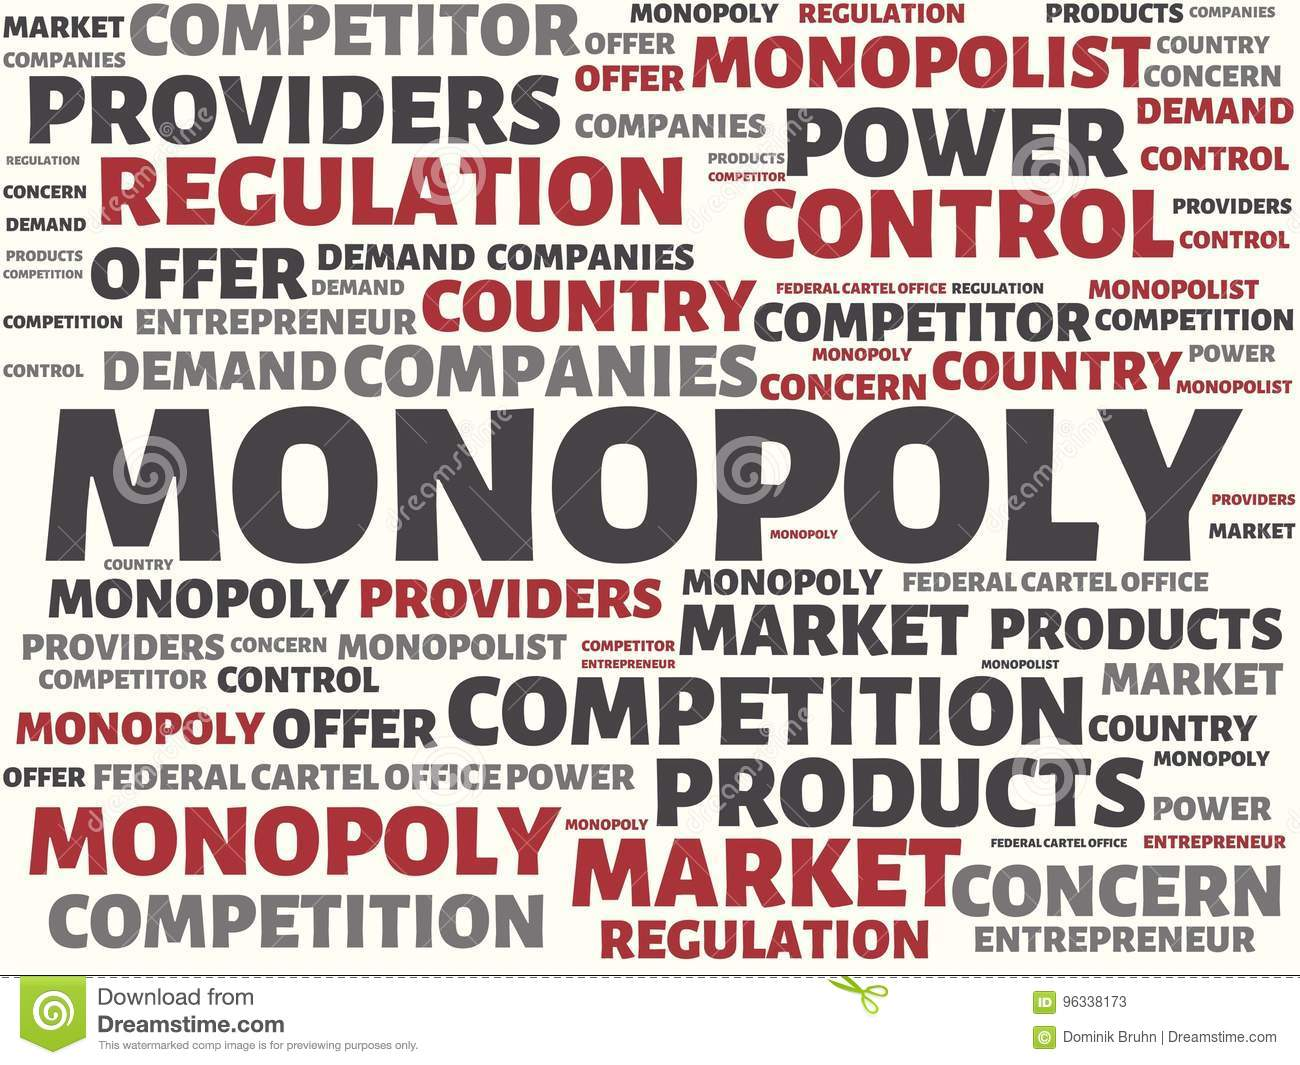 Monopoly Image With Wordsociated With The Topic Monopoly Word Cloud Cube Letter Image Il Ration